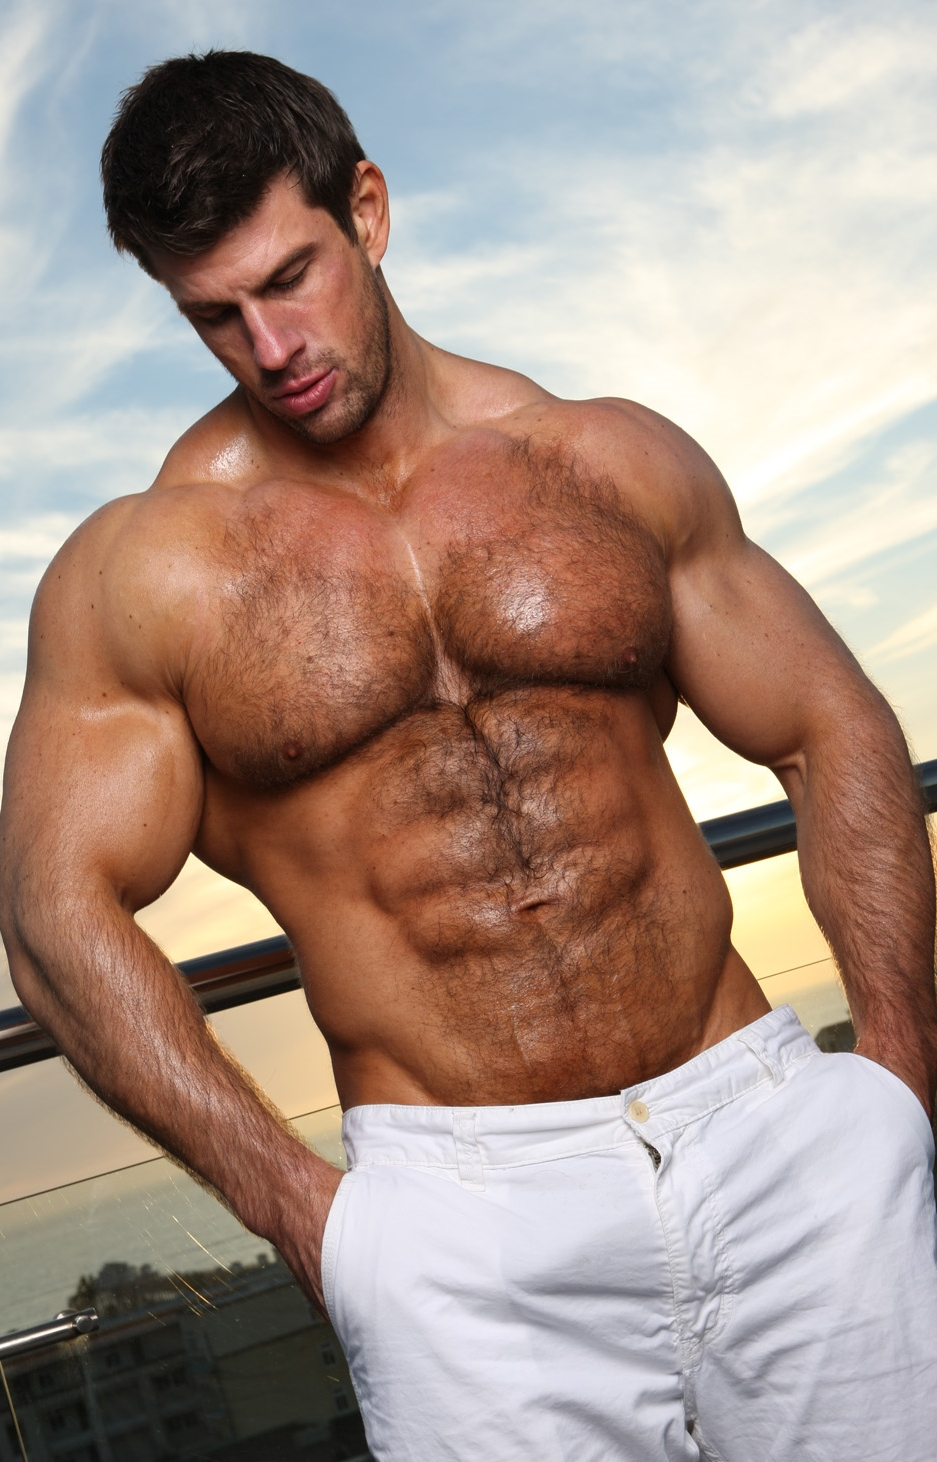 from Cristopher gay man masculine muscular